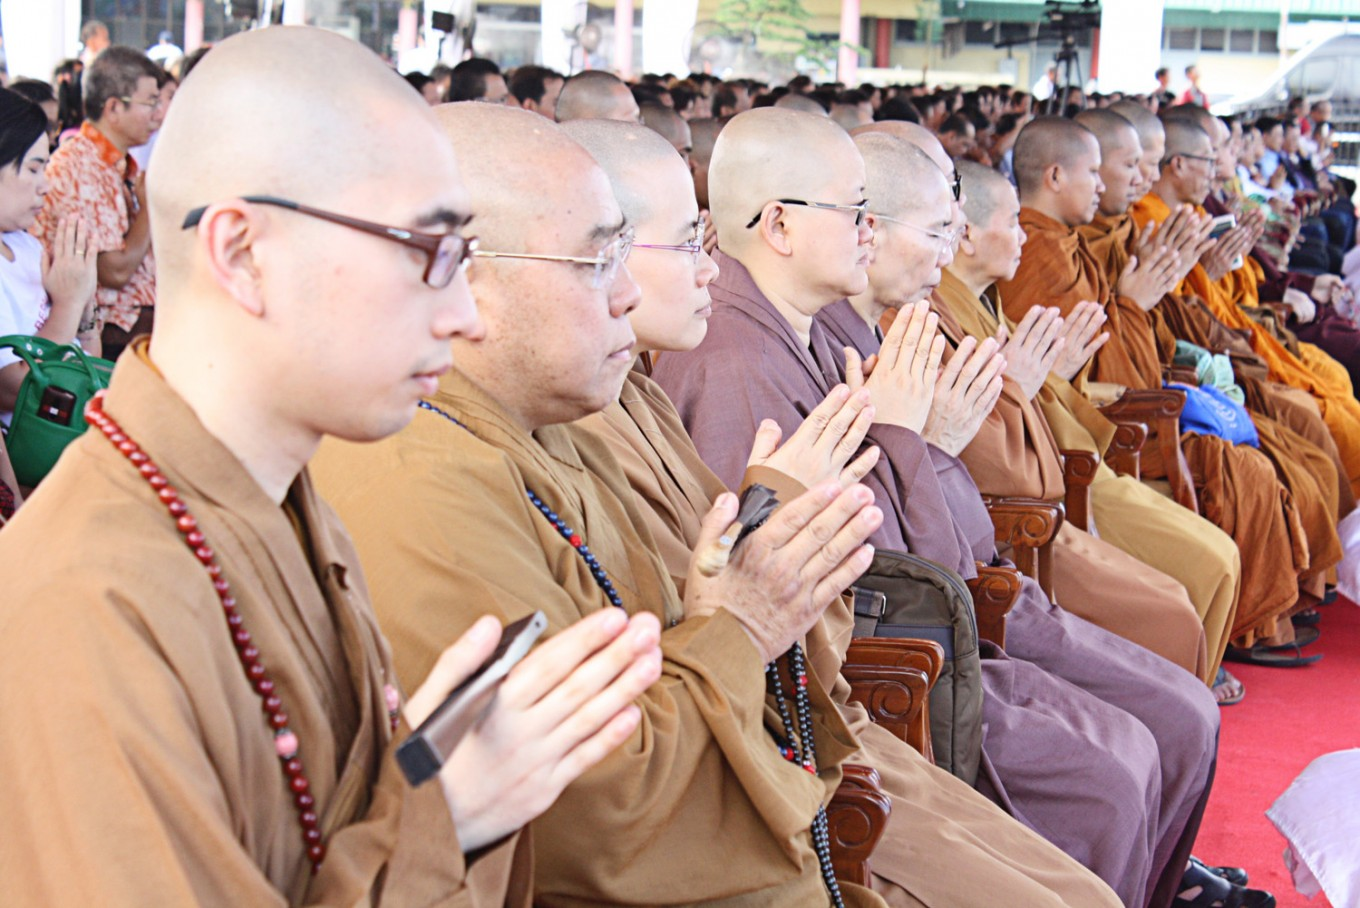 Buddhists pray for peace, tolerance in Indonesia